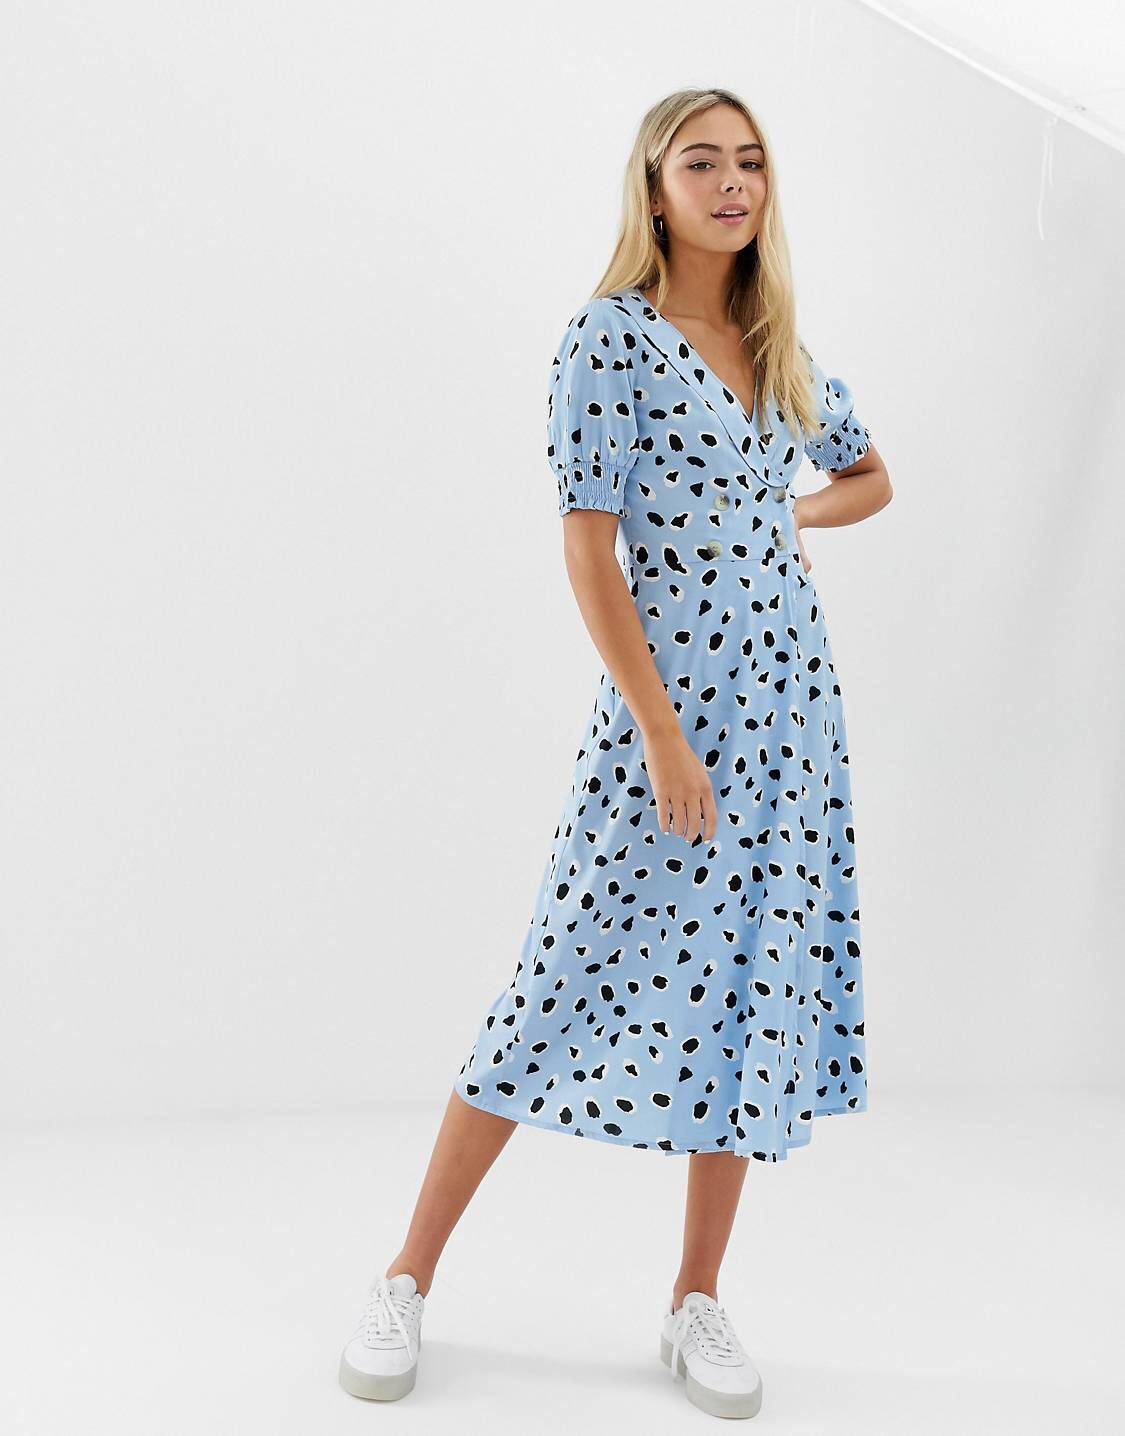 d996c82225 Wednesday's Girl midi dress with shirred sleeves in abstract spot ...